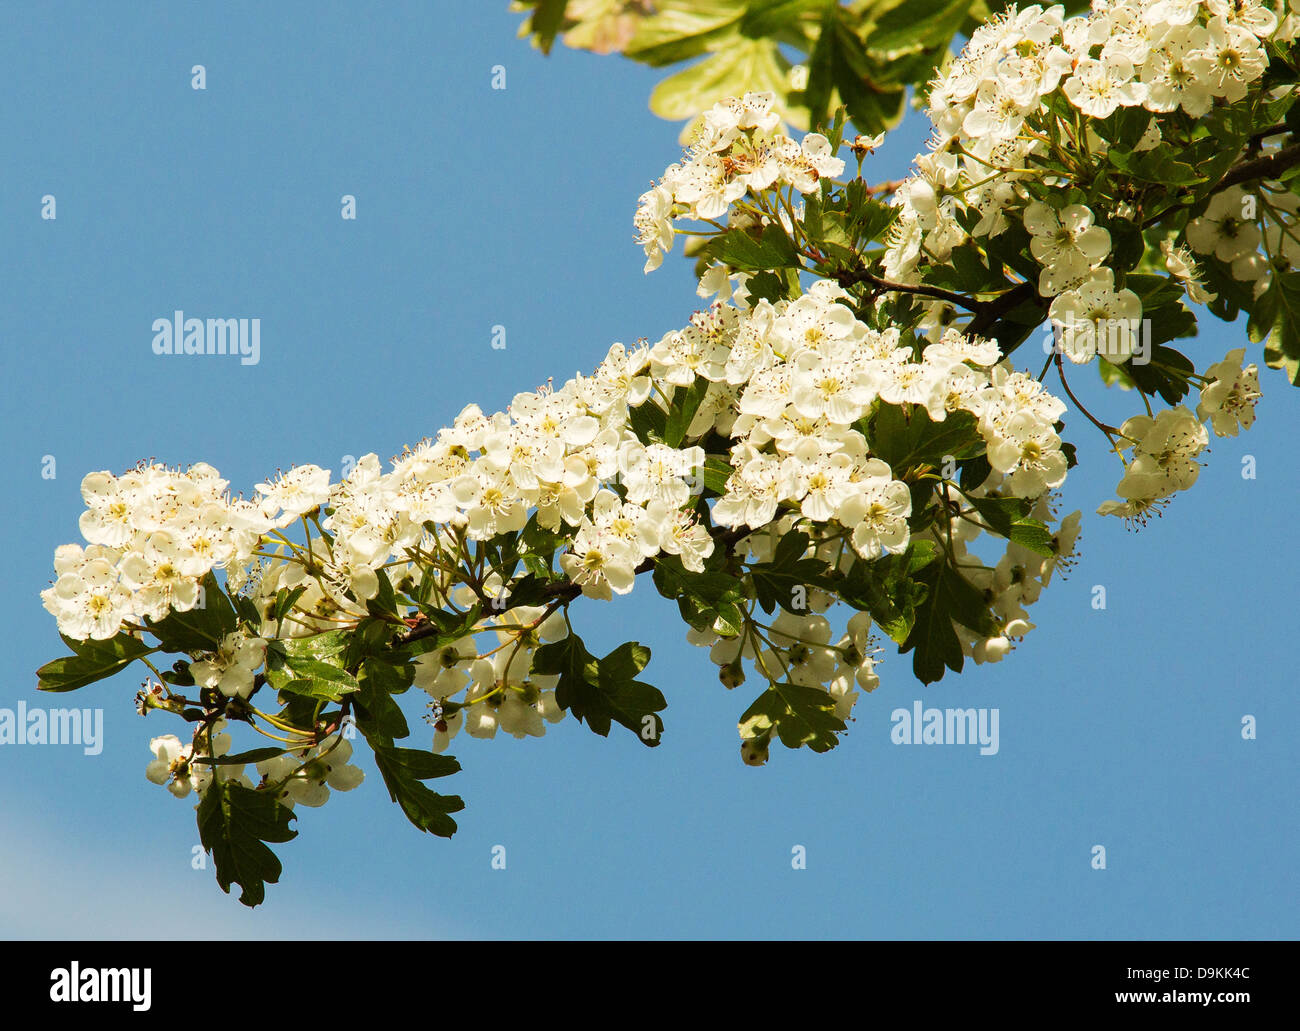 Branch of a Hawthorn tree or Mayblossom in blossom - Stock Image